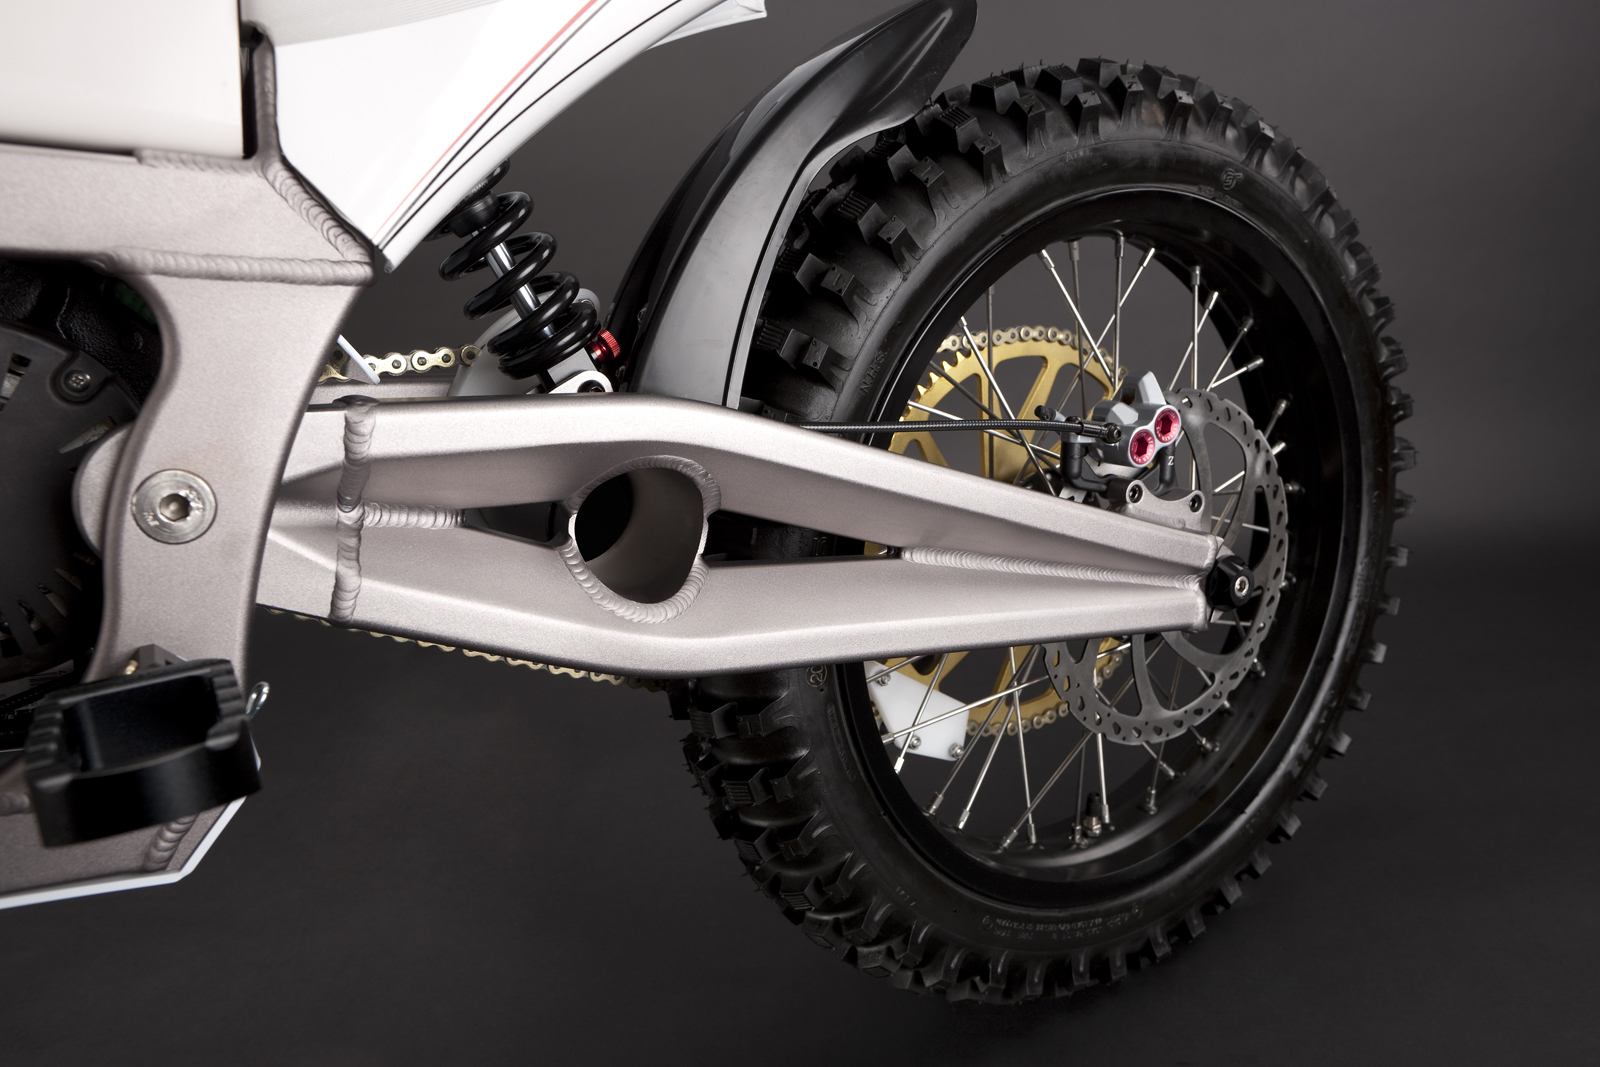 '.2010 Zero MX Electric Motorcycle: Rear Tire / Rear Shock.'